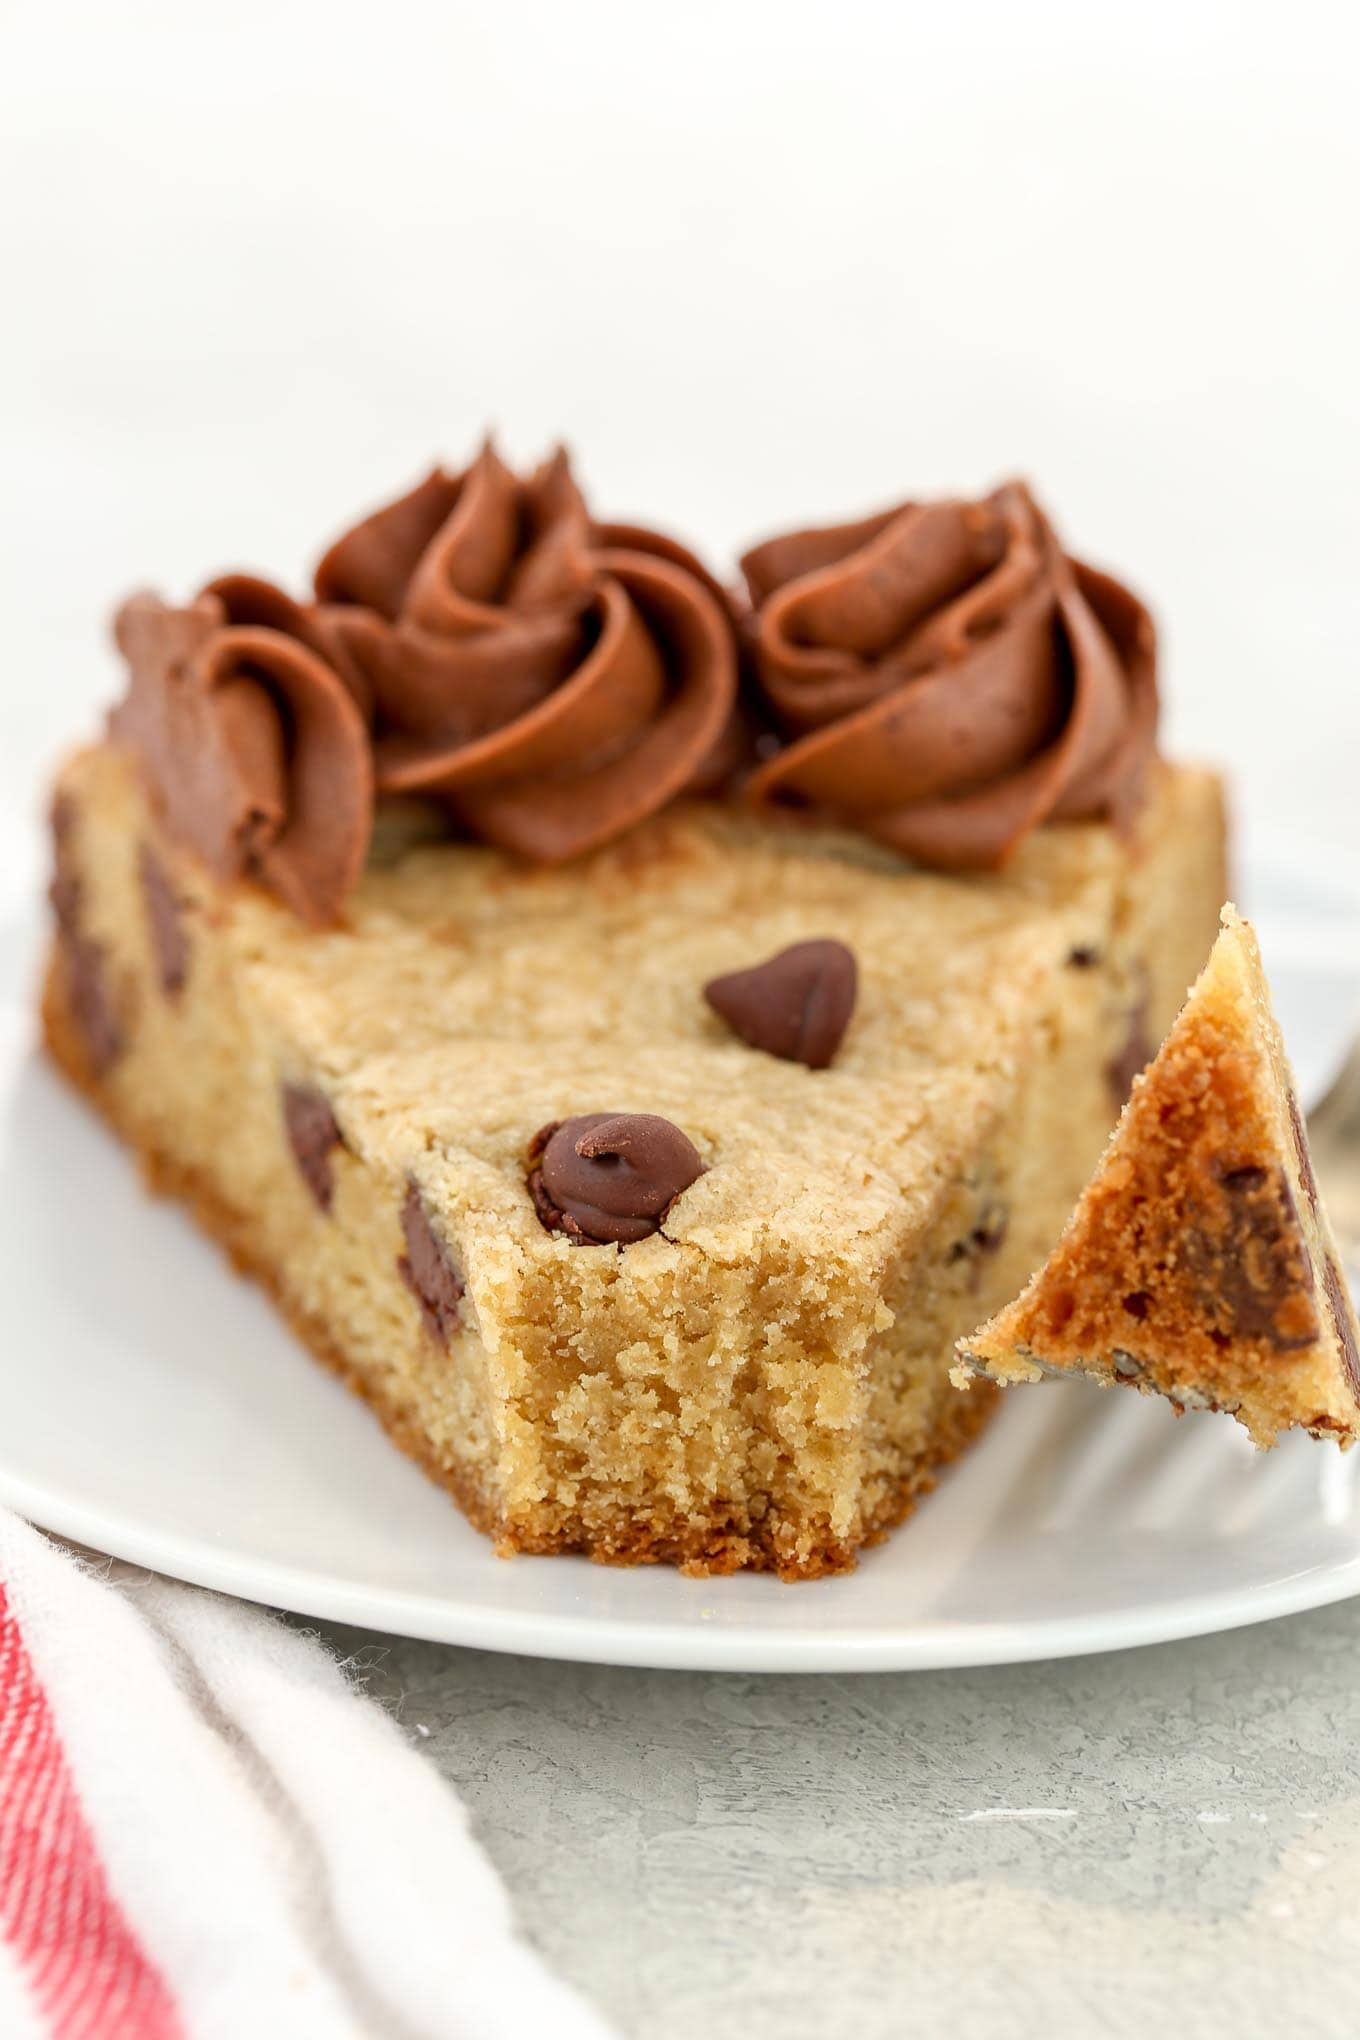 A soft, chewy cookie cake filled with chocolate chips and topped with a chocolate buttercream frosting. This Chocolate Chip Cookie Cake is the perfect dessert for any occasion!